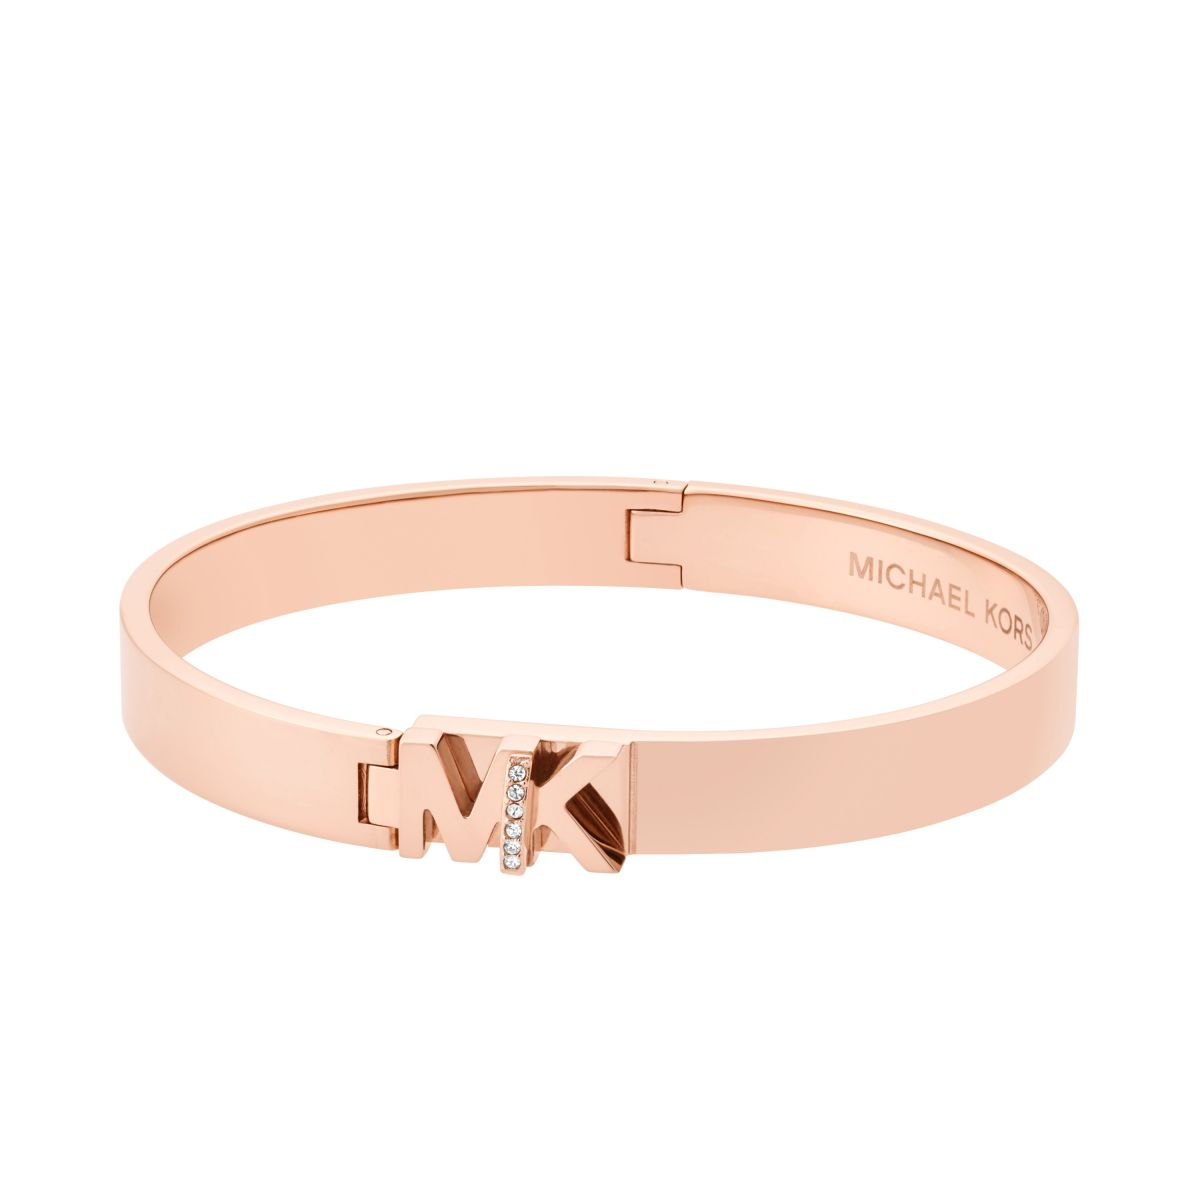 Ladies Michael Kors Jewellery Rose Gold Plated Iconic Bracelet